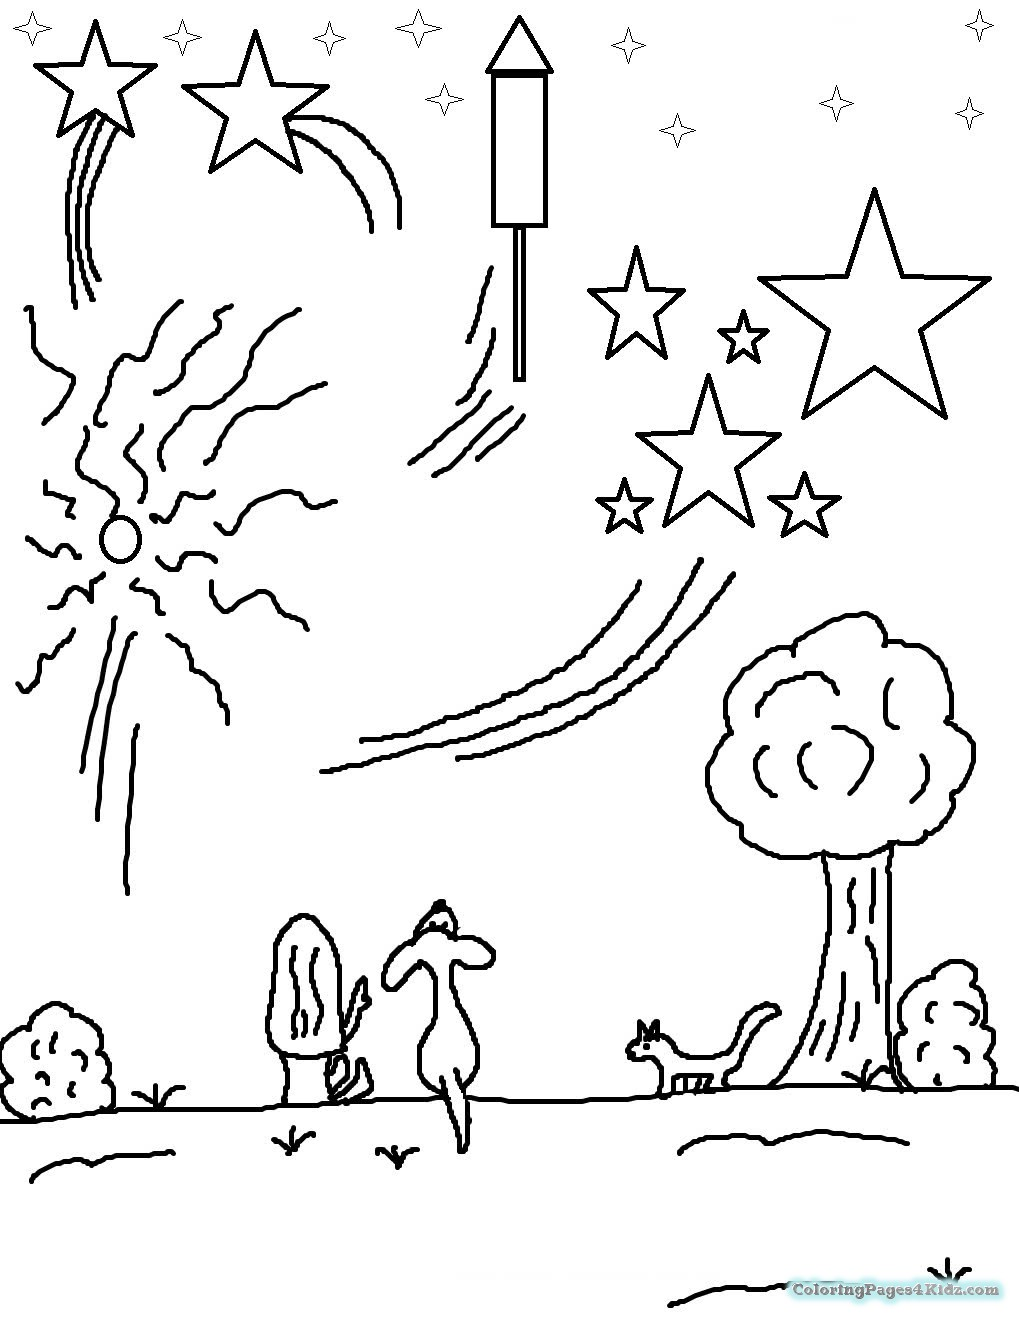 coloring page of fireworks fireworks coloring pages coloring pages for kids fireworks page of coloring